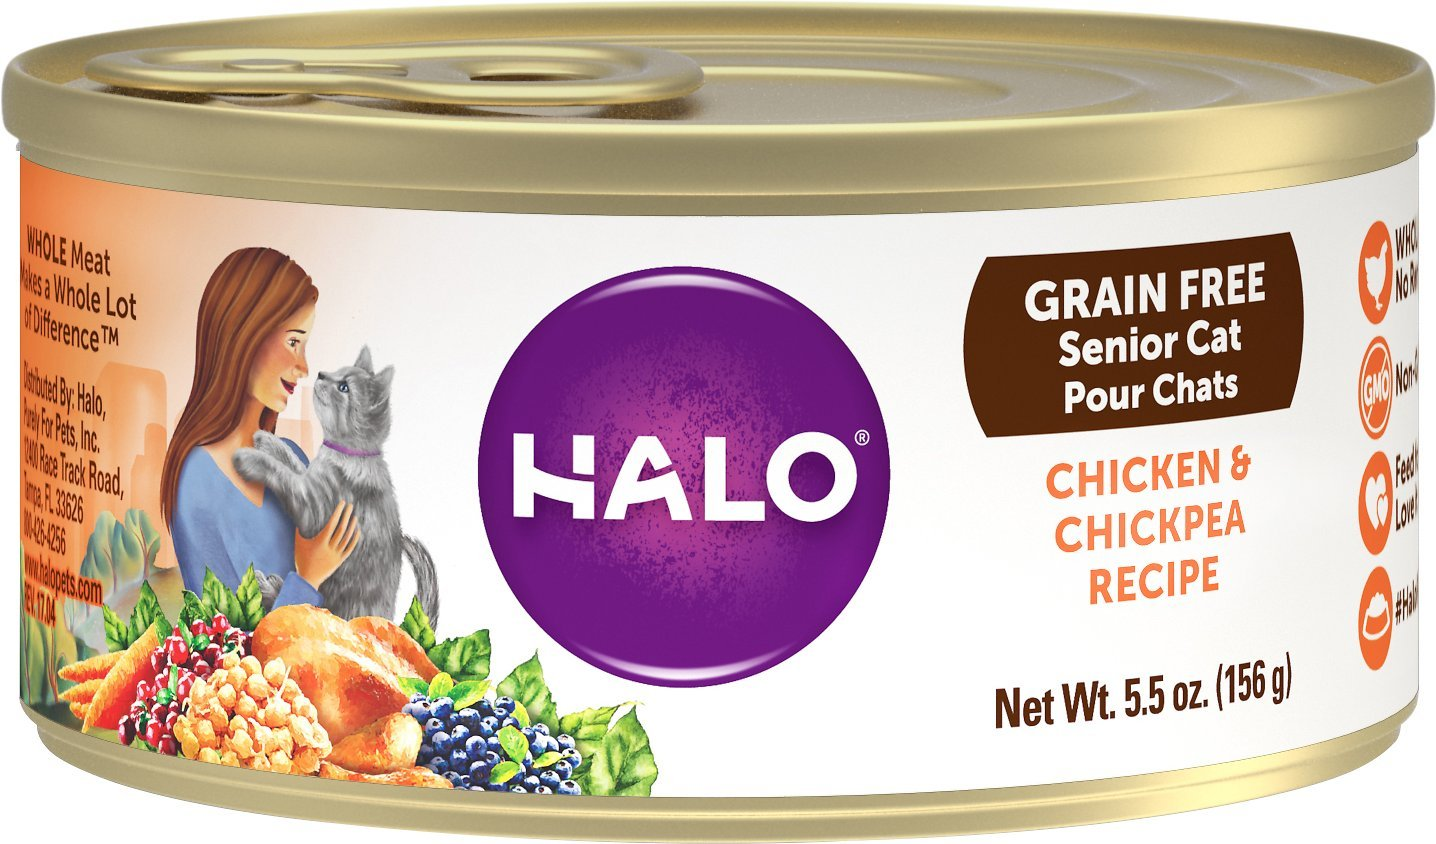 halo grain free cat food for older cats